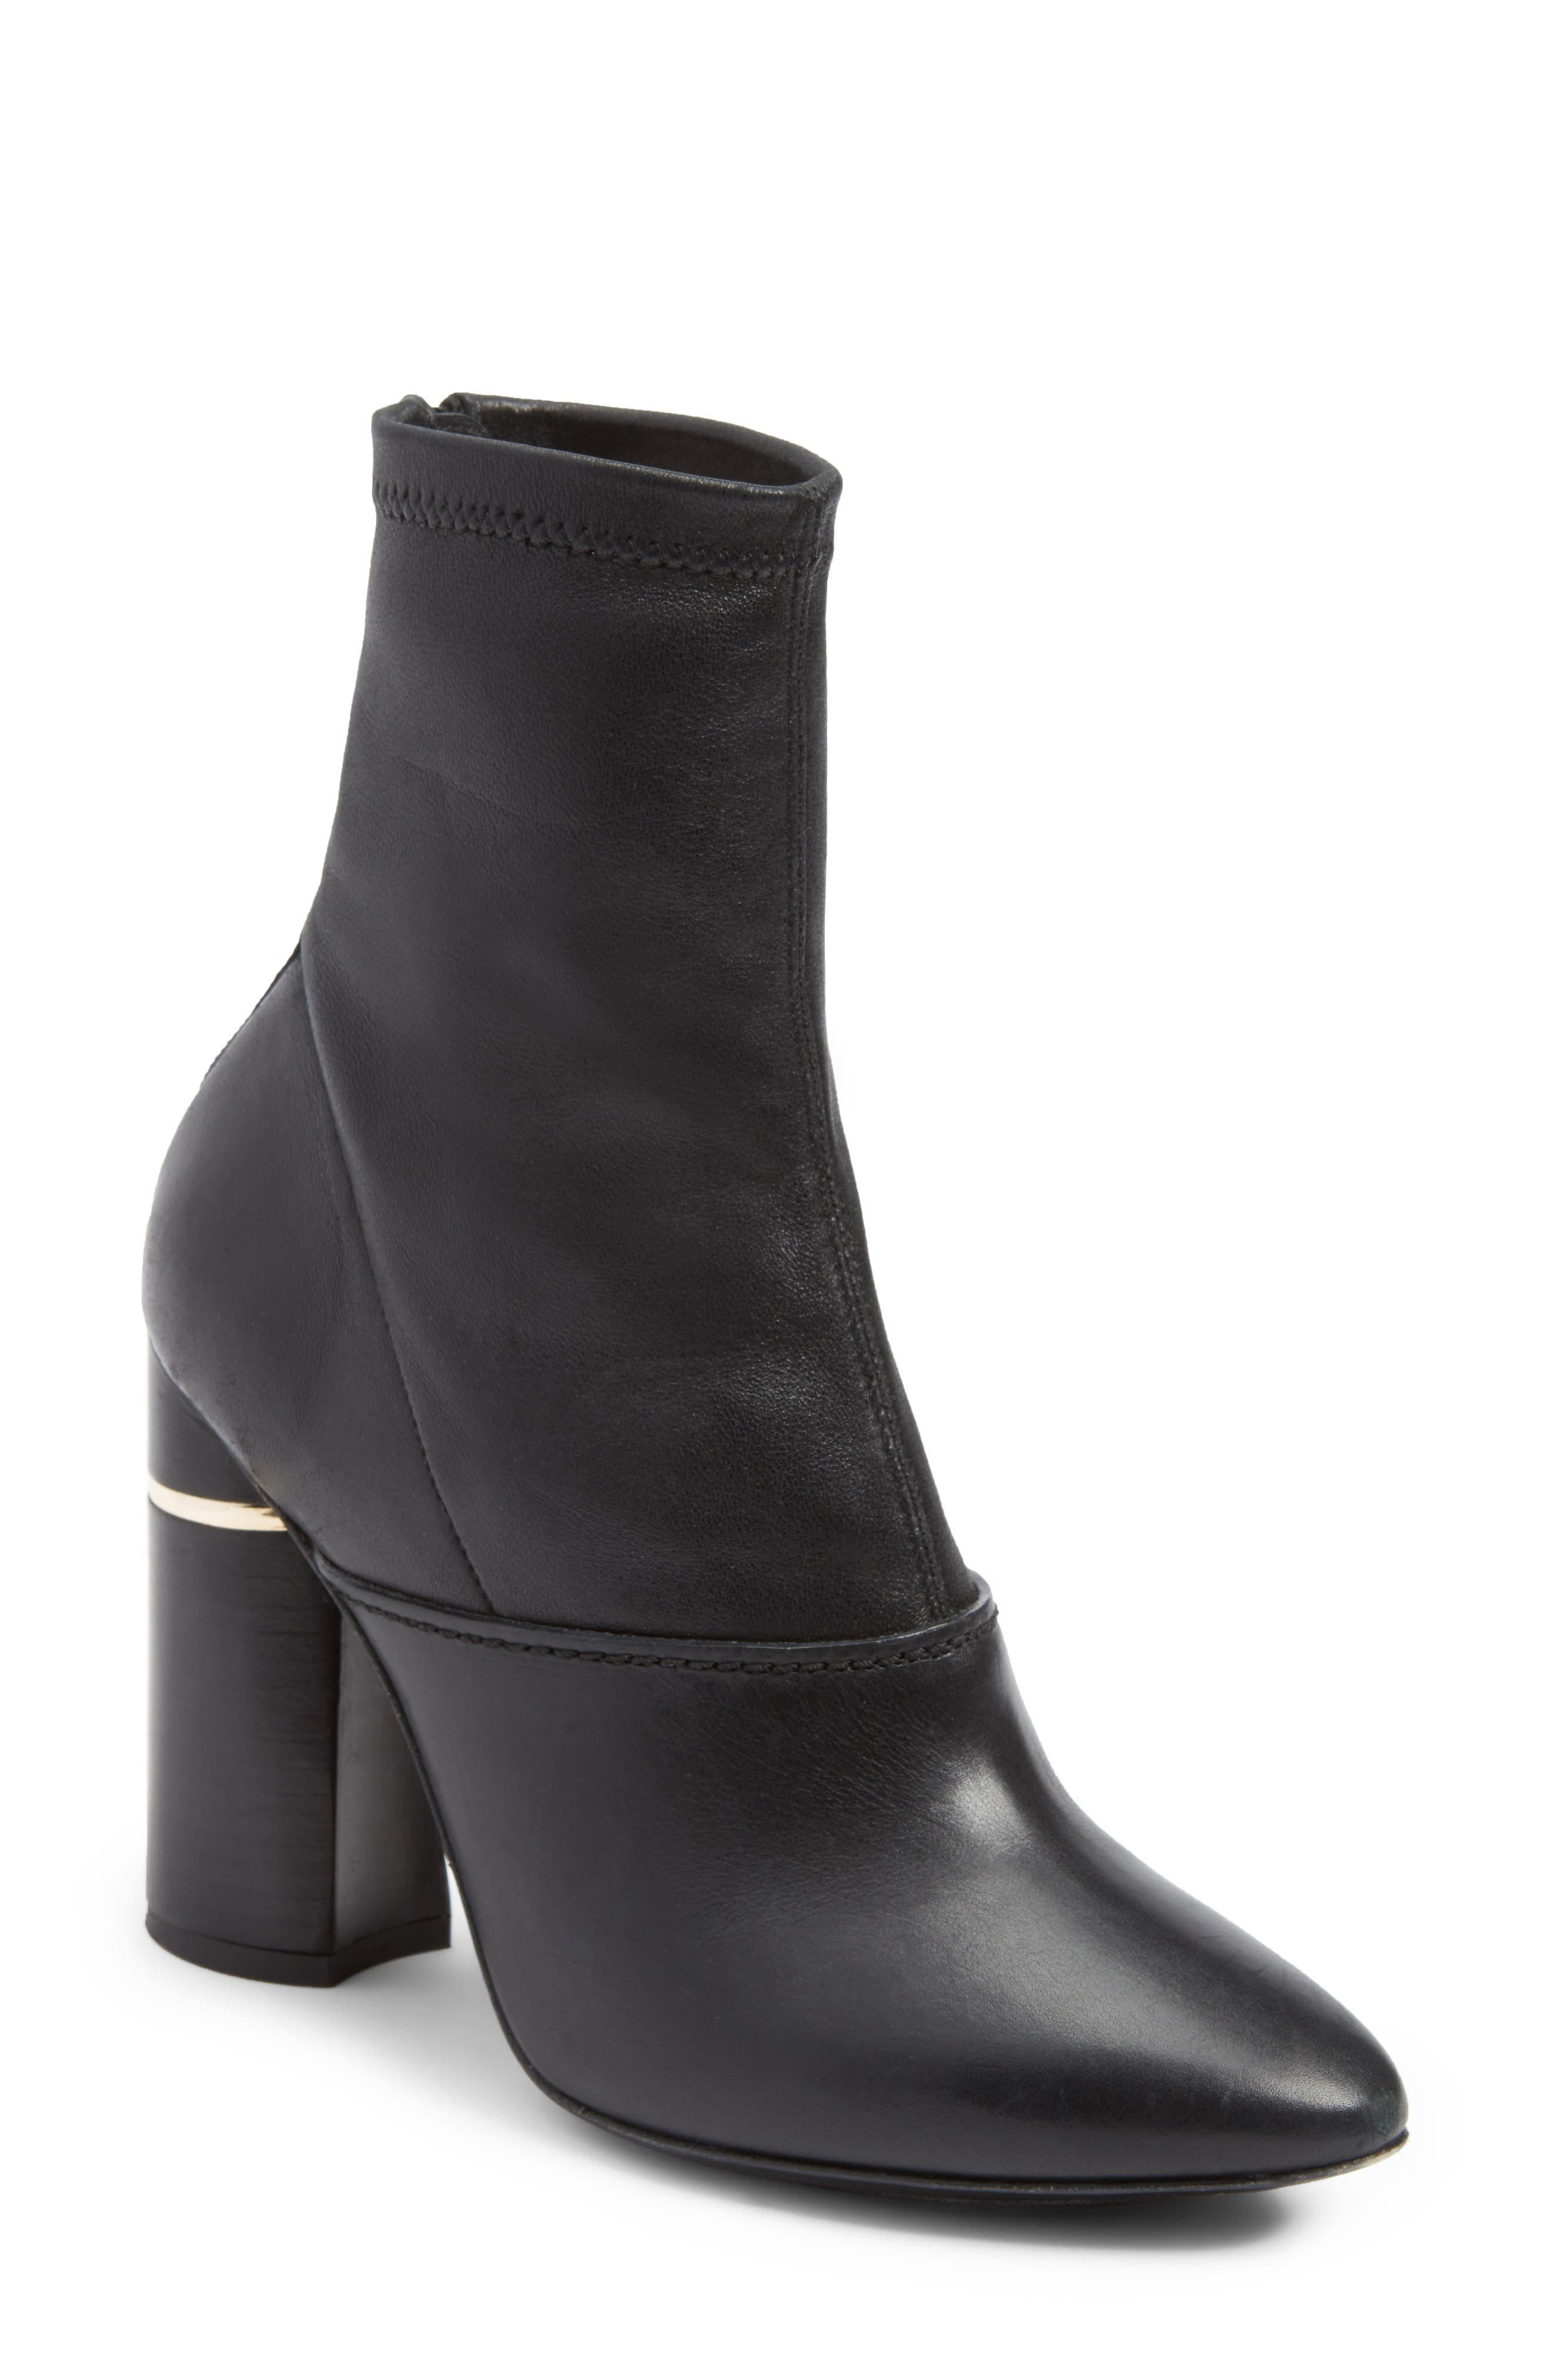 Alternate Image 1 Selected - 3.1 Phillip Lim Kyoto Leather Bootie (Women)